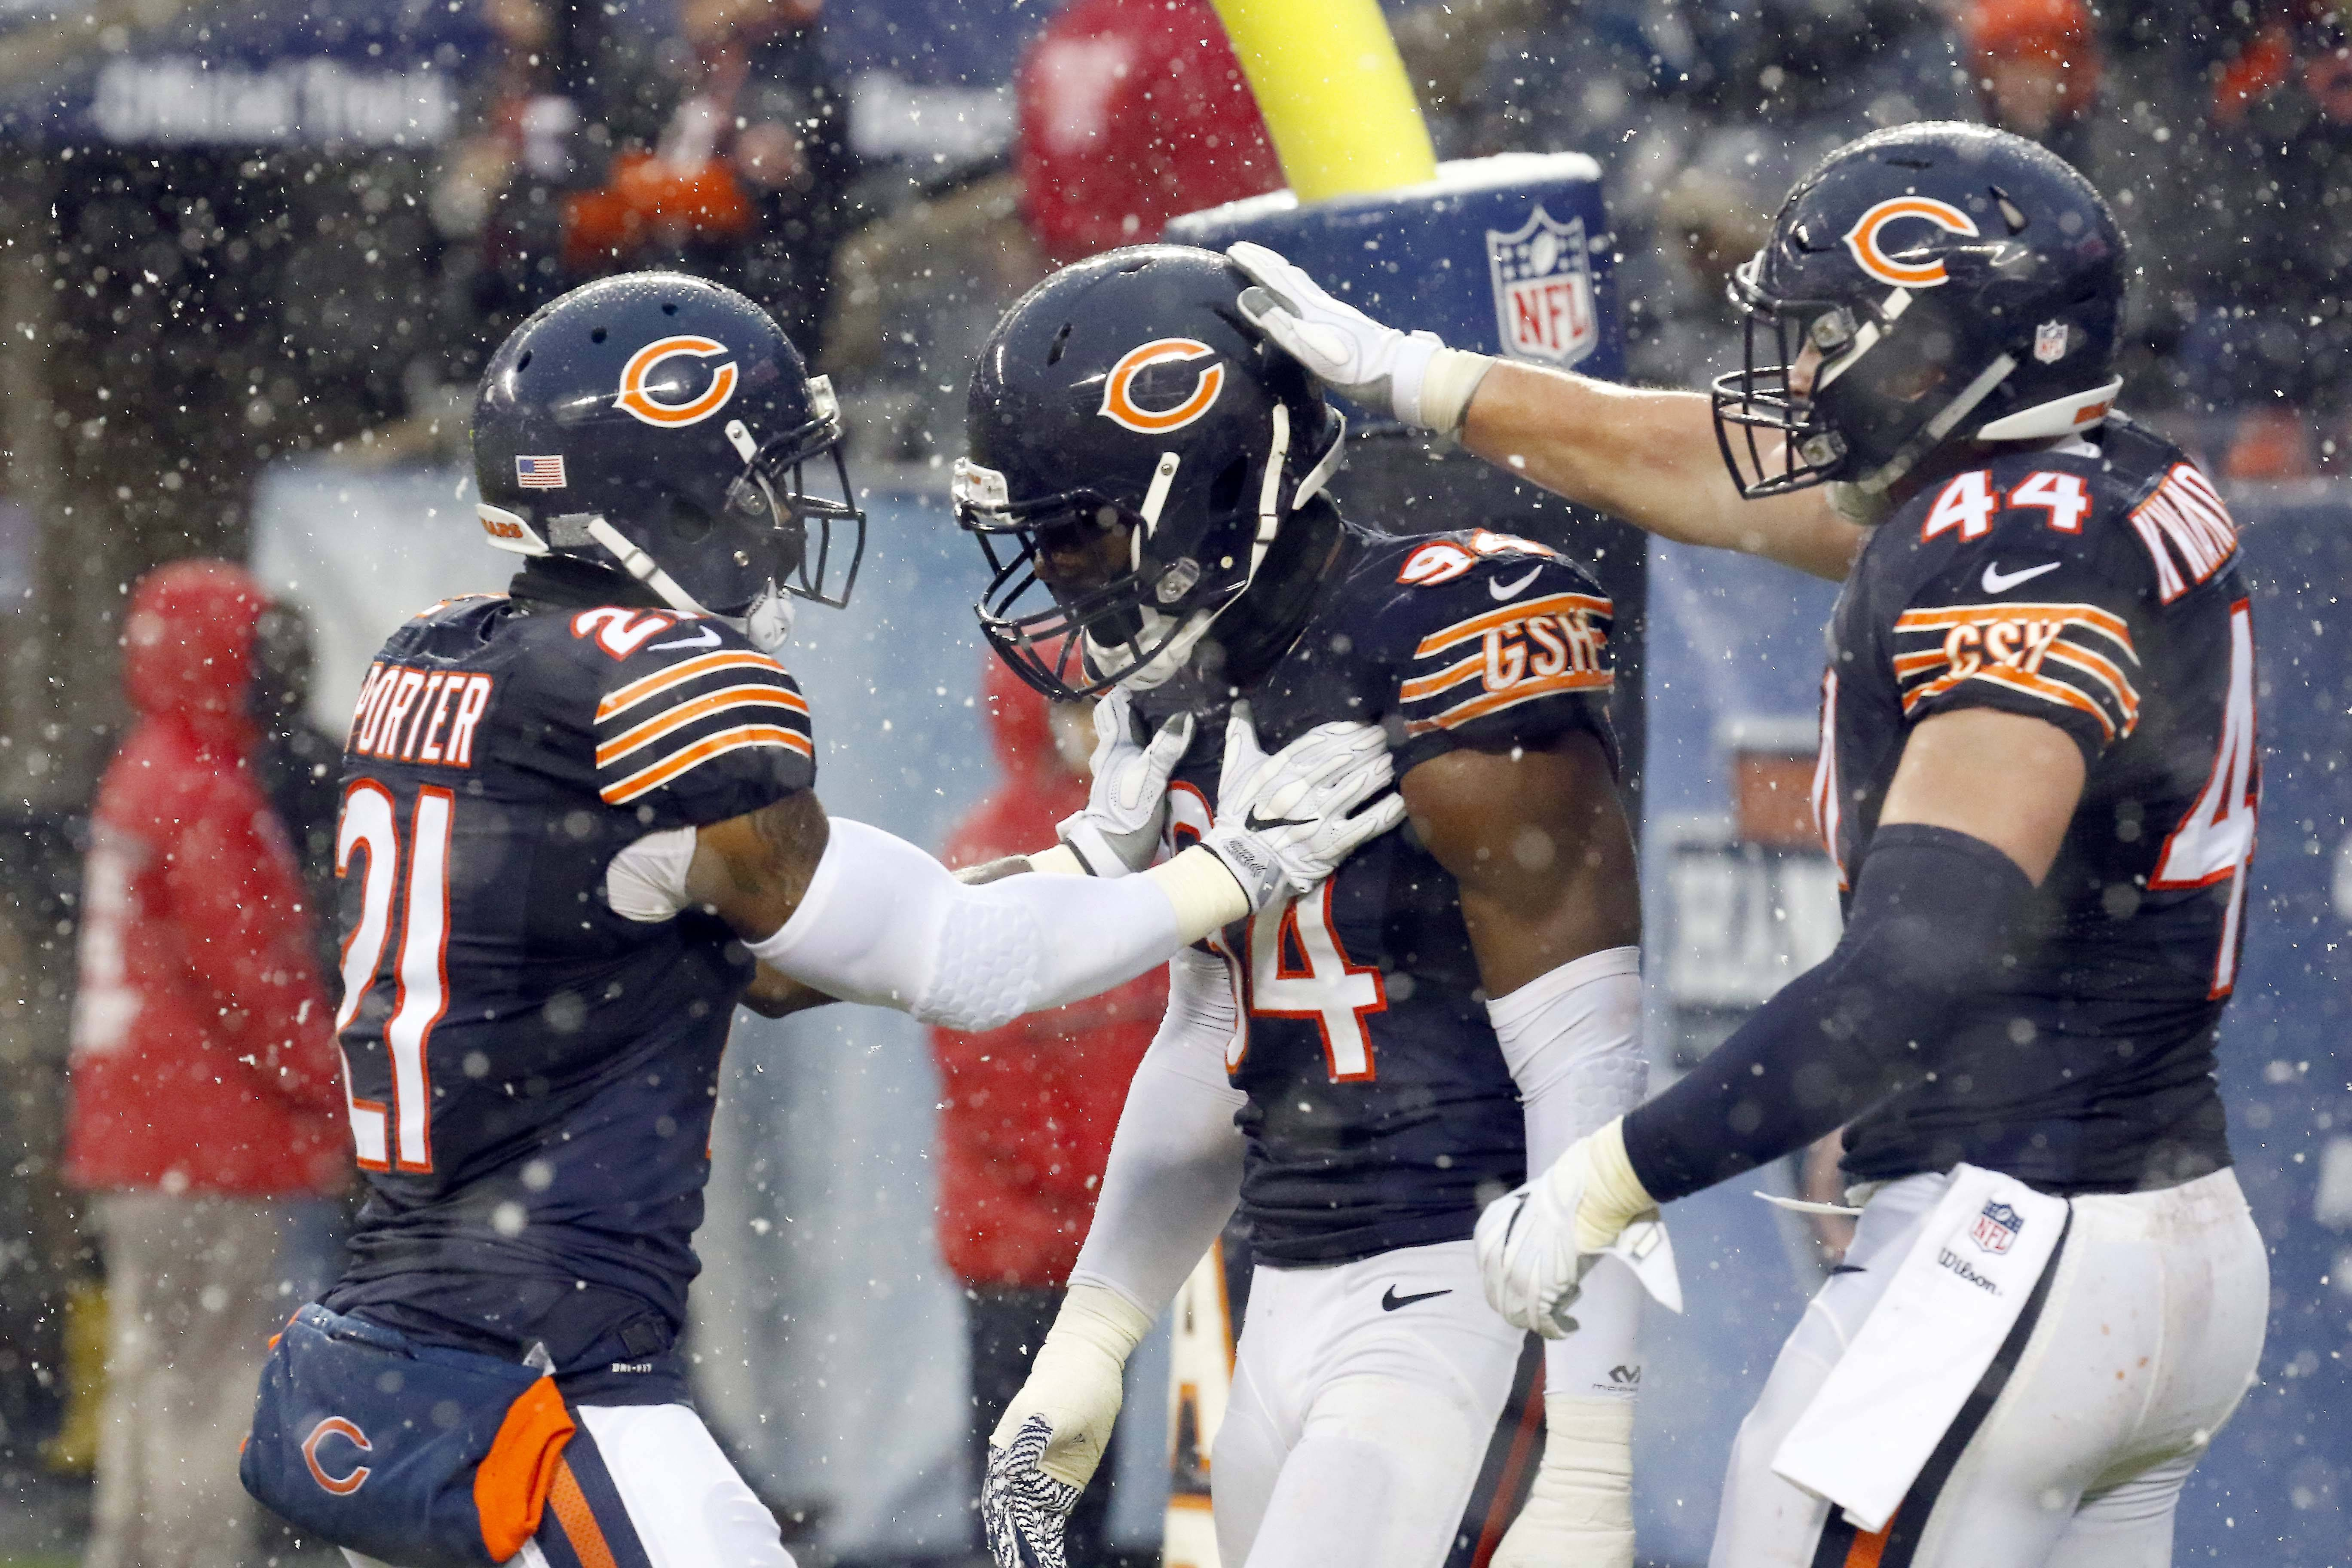 Brian Hill/bhill@dailyherald.com Chicago Bears outside linebacker Leonard Floyd (94) is congratulated by his teammates cornerback Tracy Porter (21) and inside linebacker Nick Kwiatkoski (44) after sacking San Francisco 49ers quarterback Blaine Gabbert (2) for a safety Sunday at Soldier Field in Chicago.